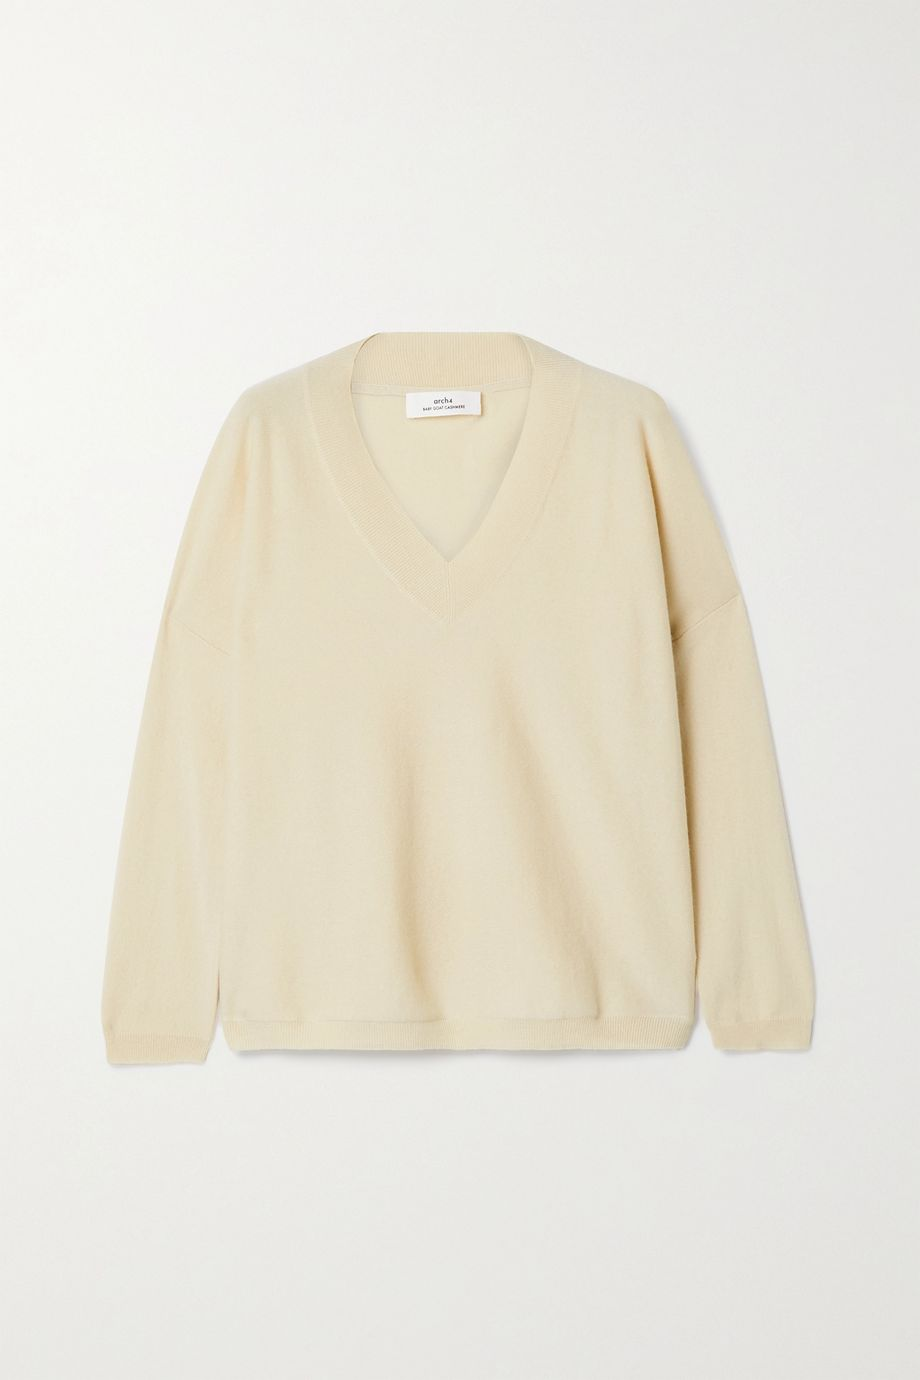 Arch4 Linda cashmere sweater